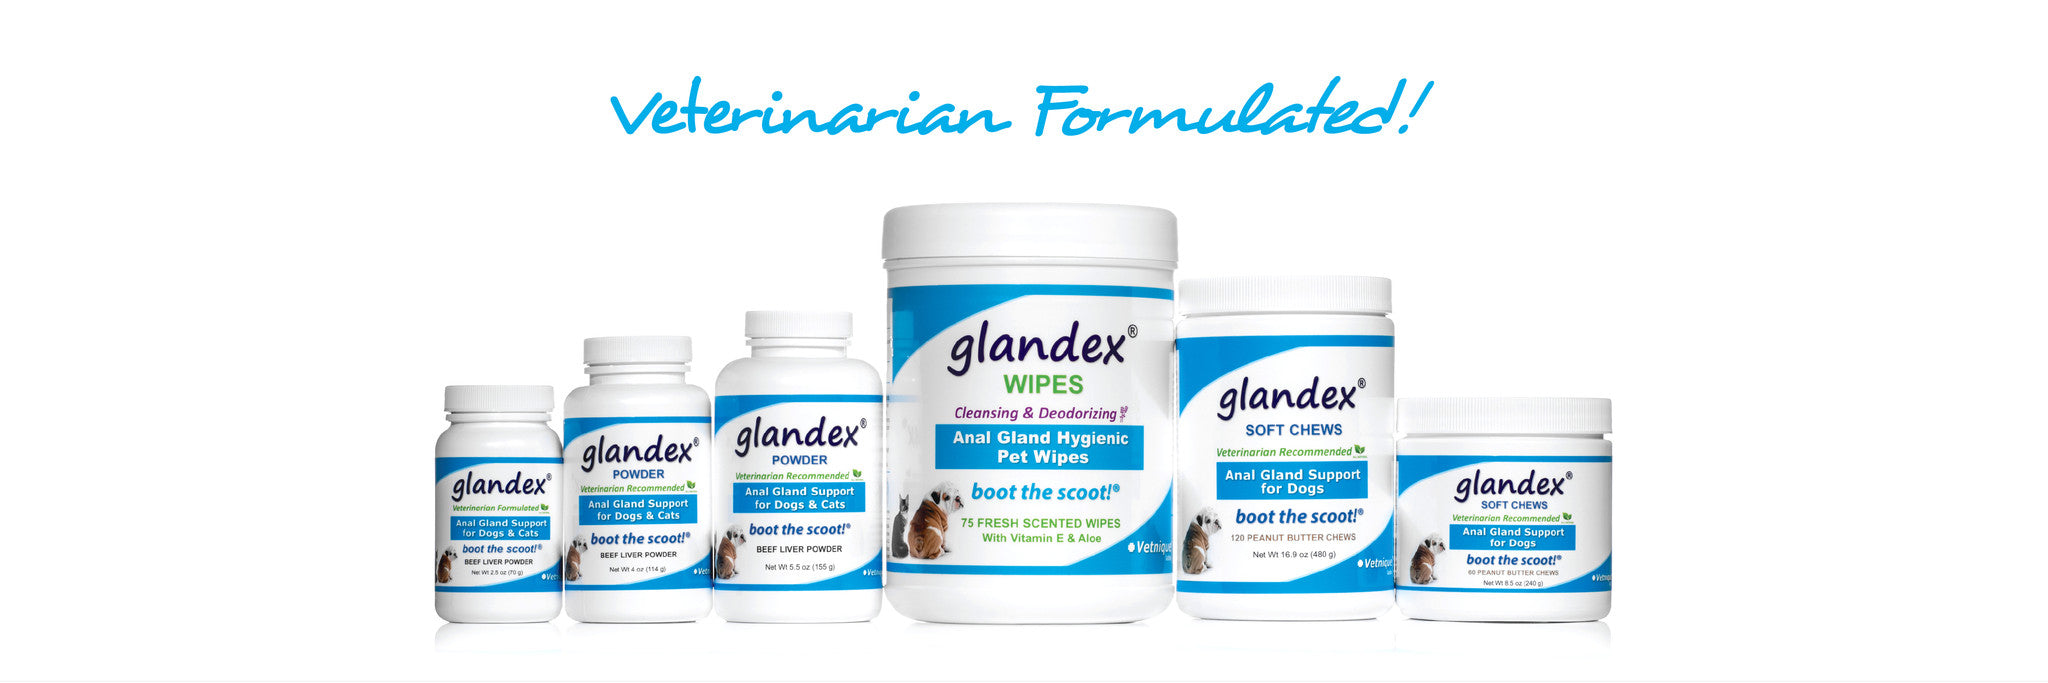 Glandex Anal Gland Supplement Ingredients